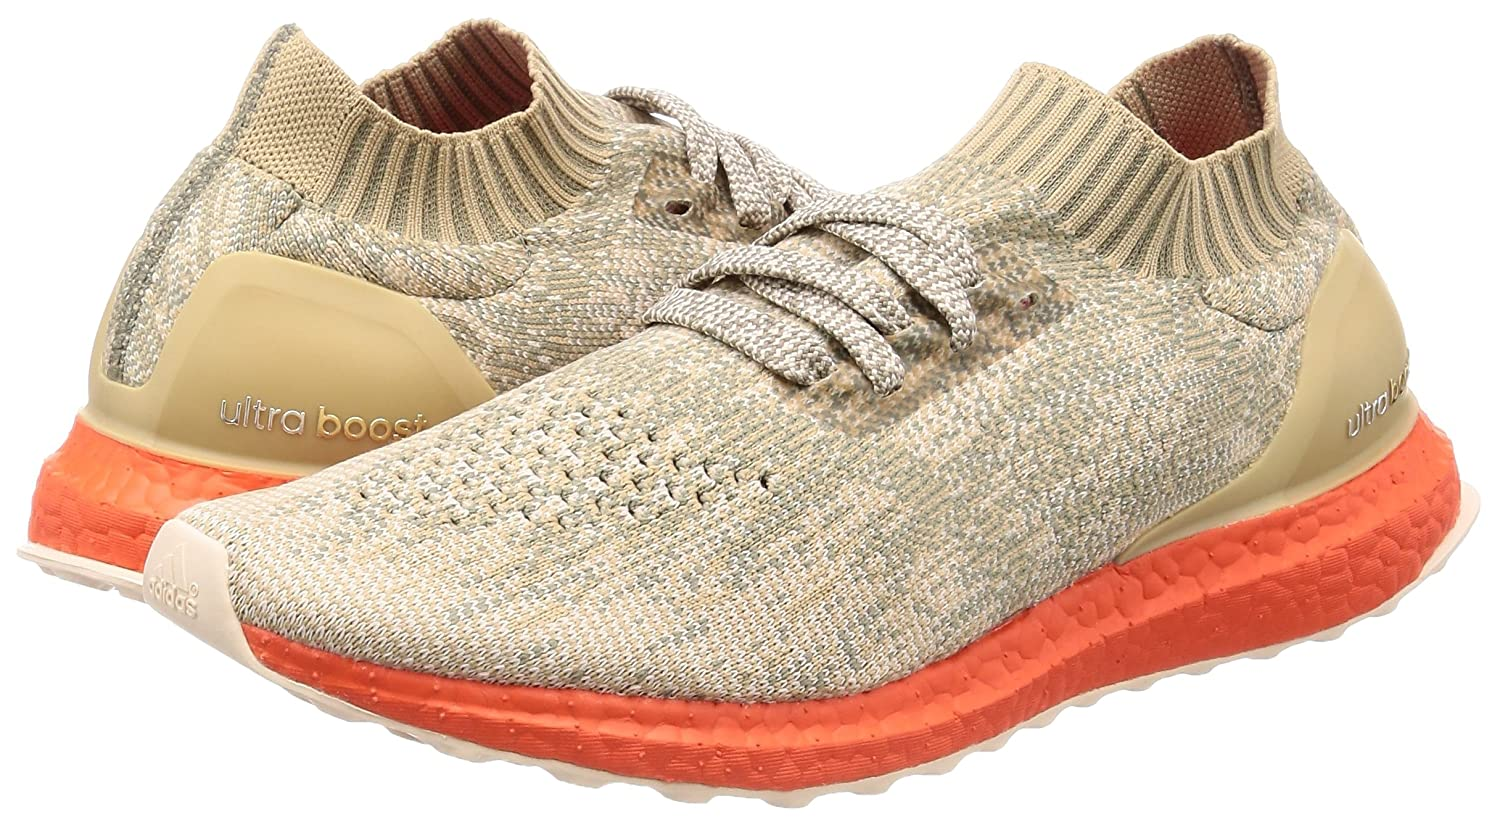 separation shoes 87ba4 b2d0a adidas Ultra Boost Uncaged Trace Cargo - Trace Cargo Linen Khaki Trainer  Size 9 UK  Amazon.co.uk  Shoes   Bags